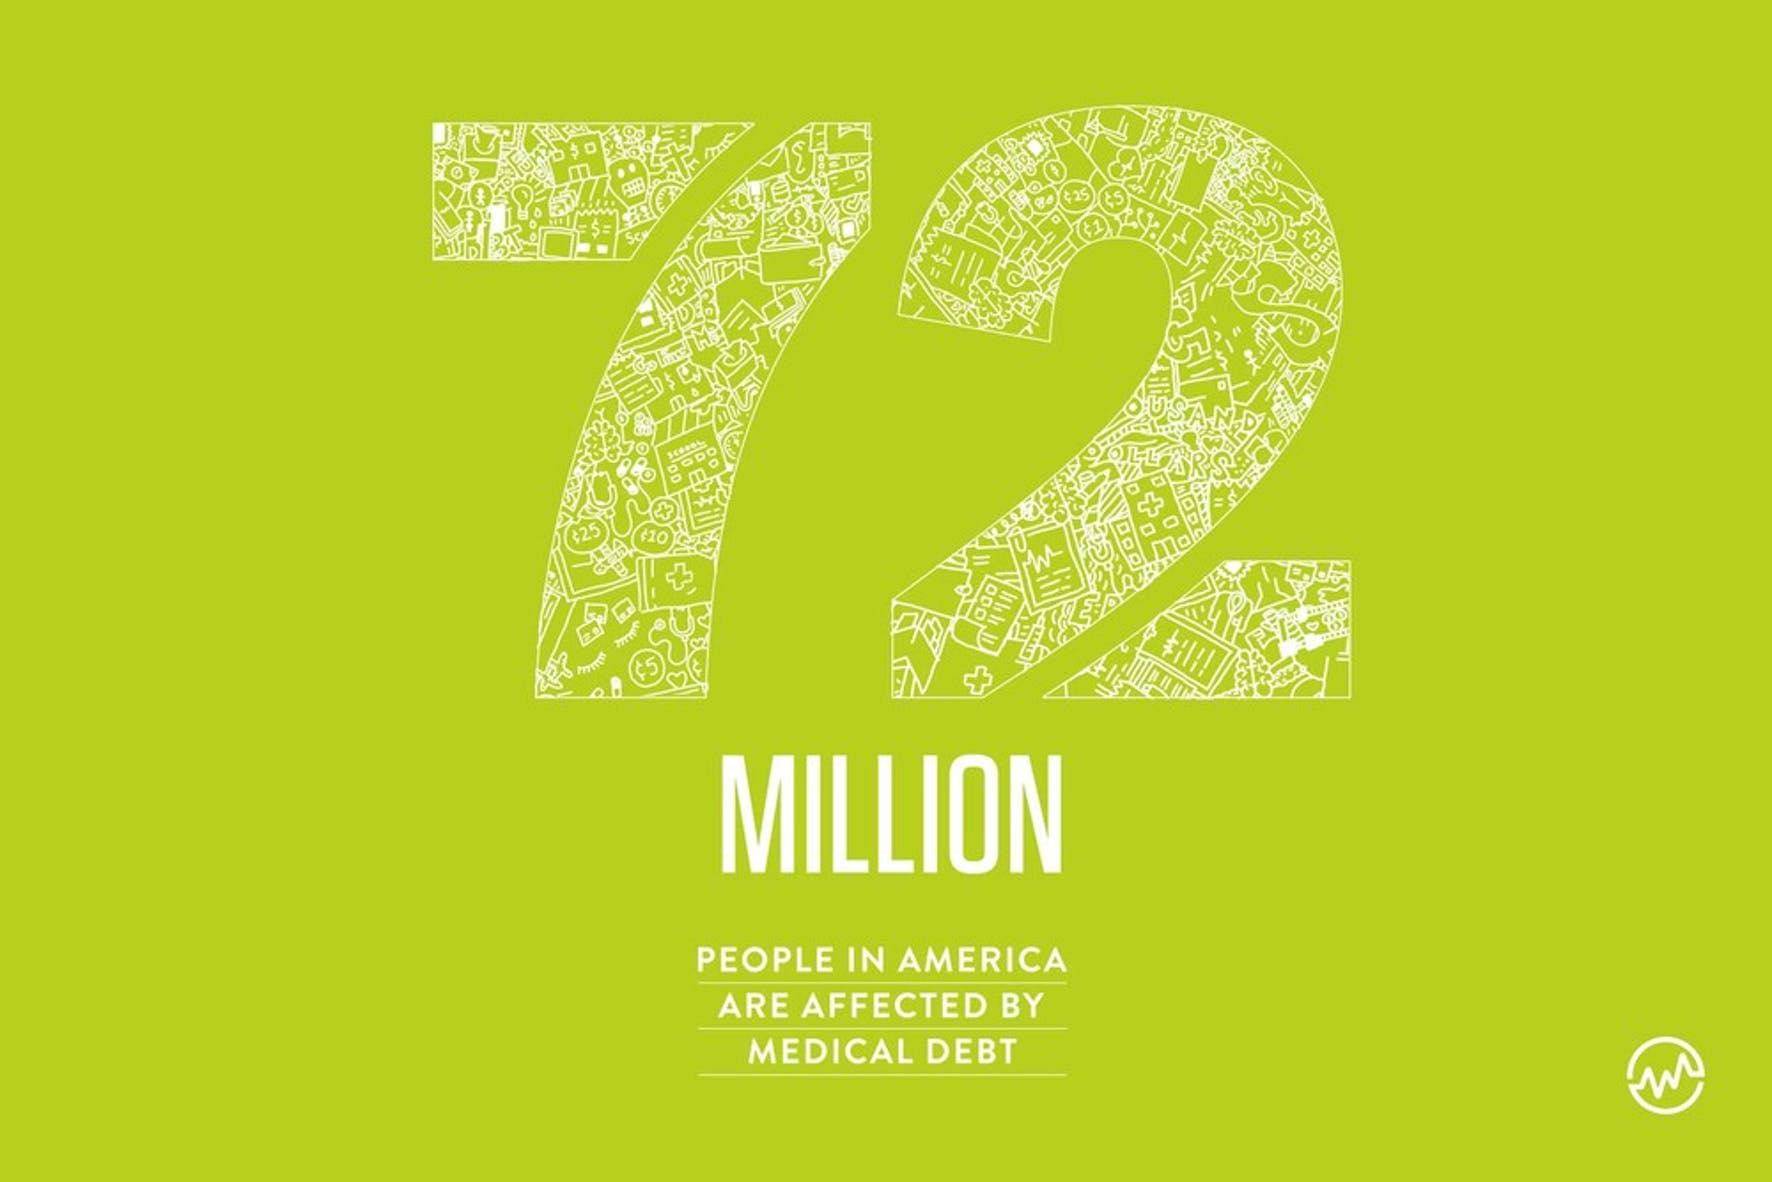 Organizations that help pay medical bills: 72 million people in America have medical debt